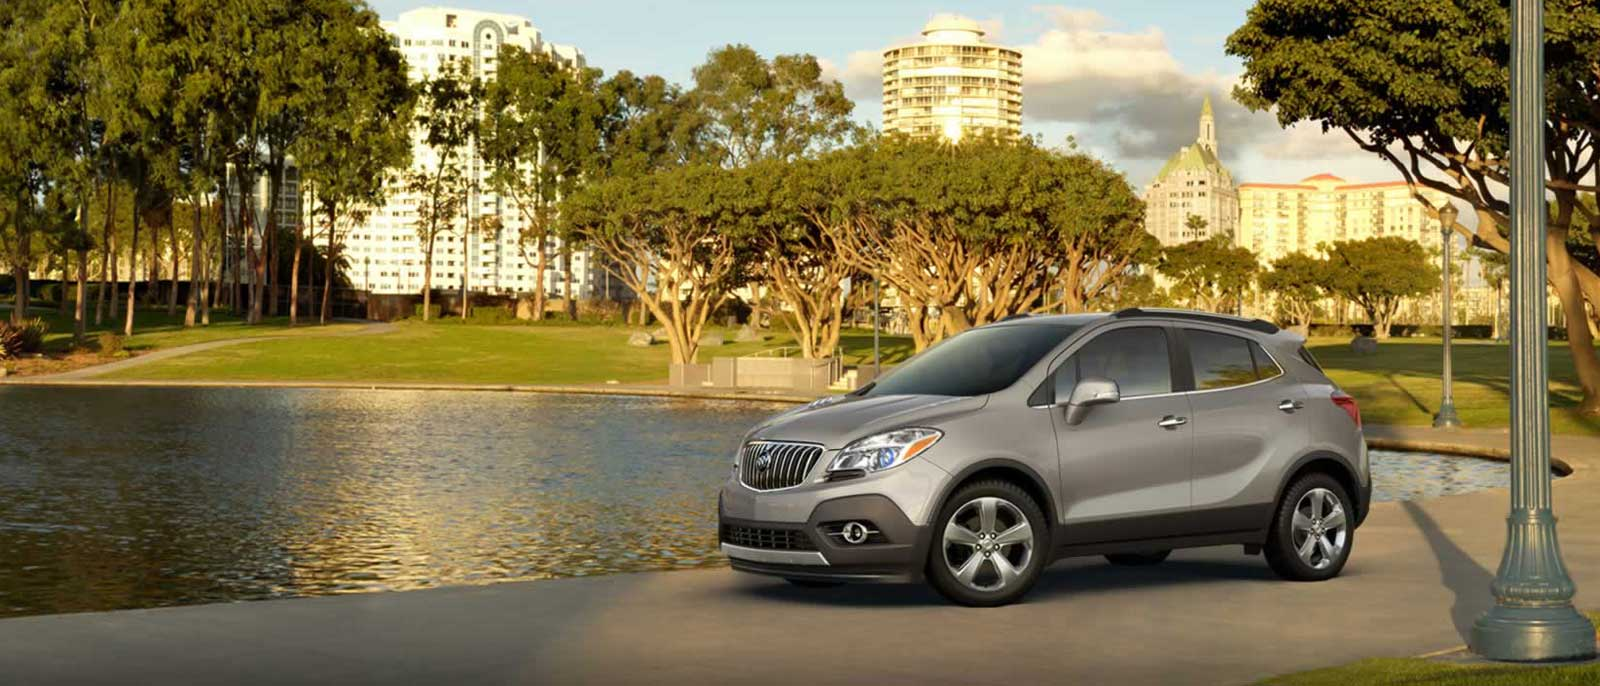 2015 Buick Encore in the park